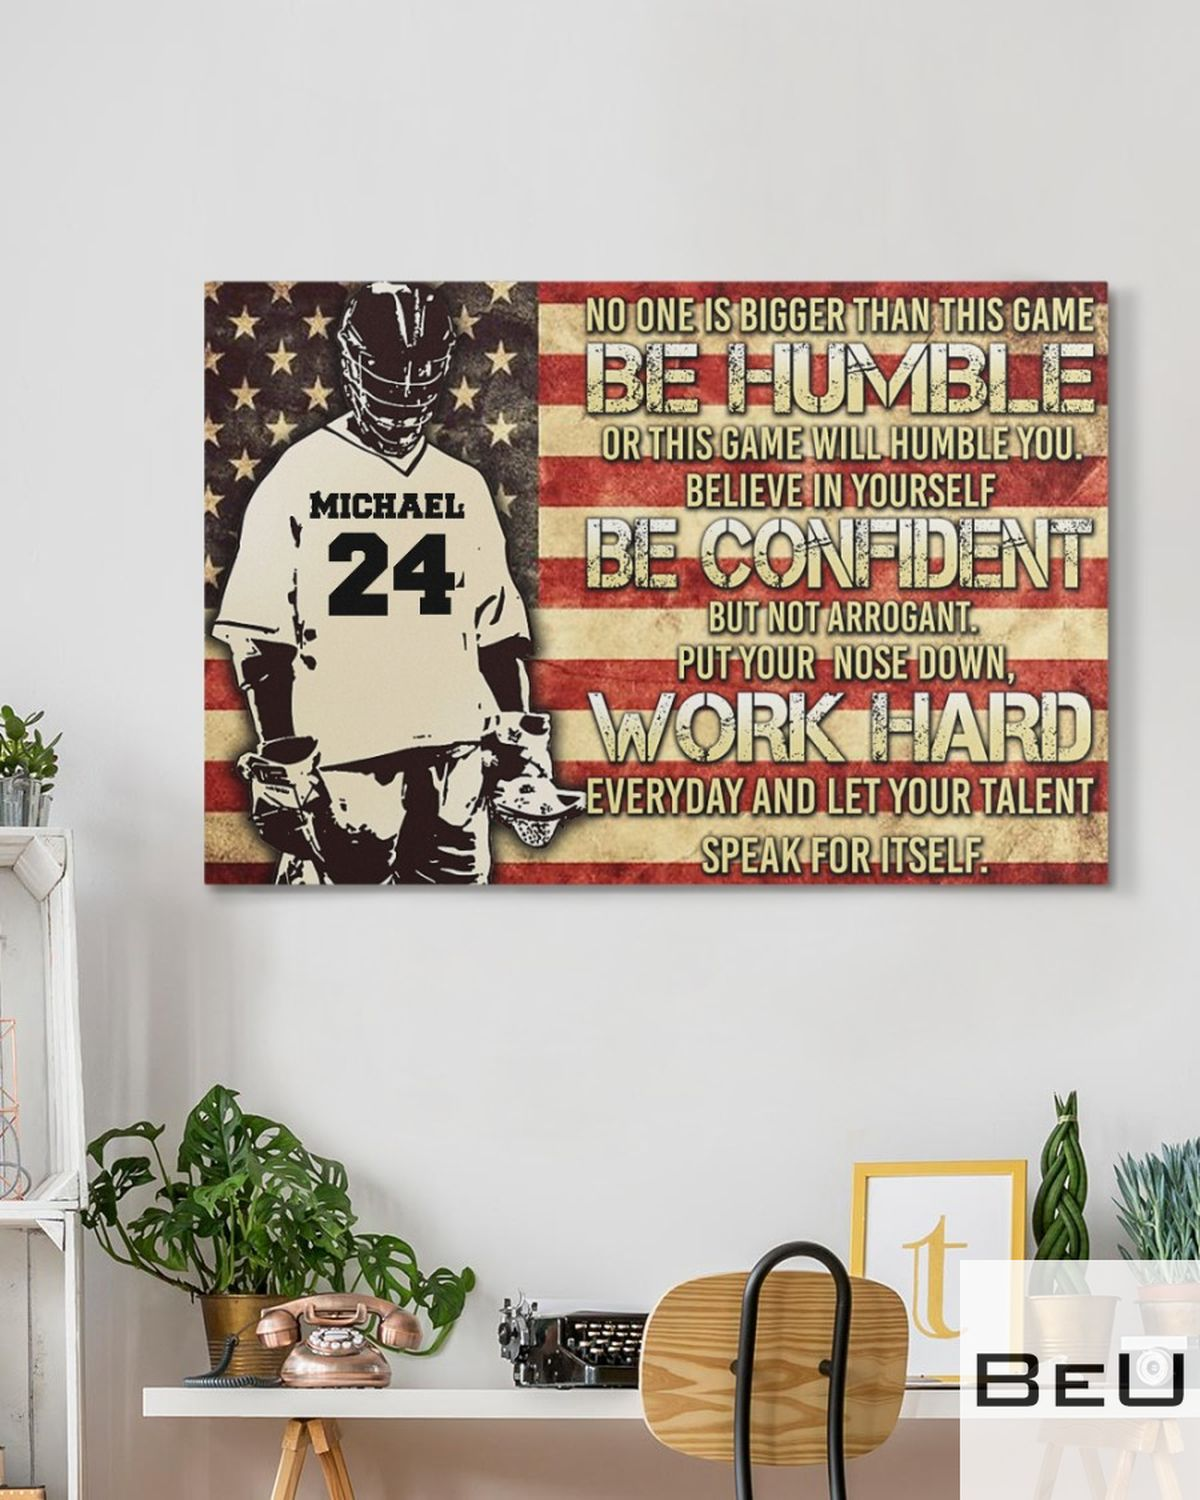 Personalized No One Is Bigger Than This Game Be Humble Or This Game Will Humble You Canvasz